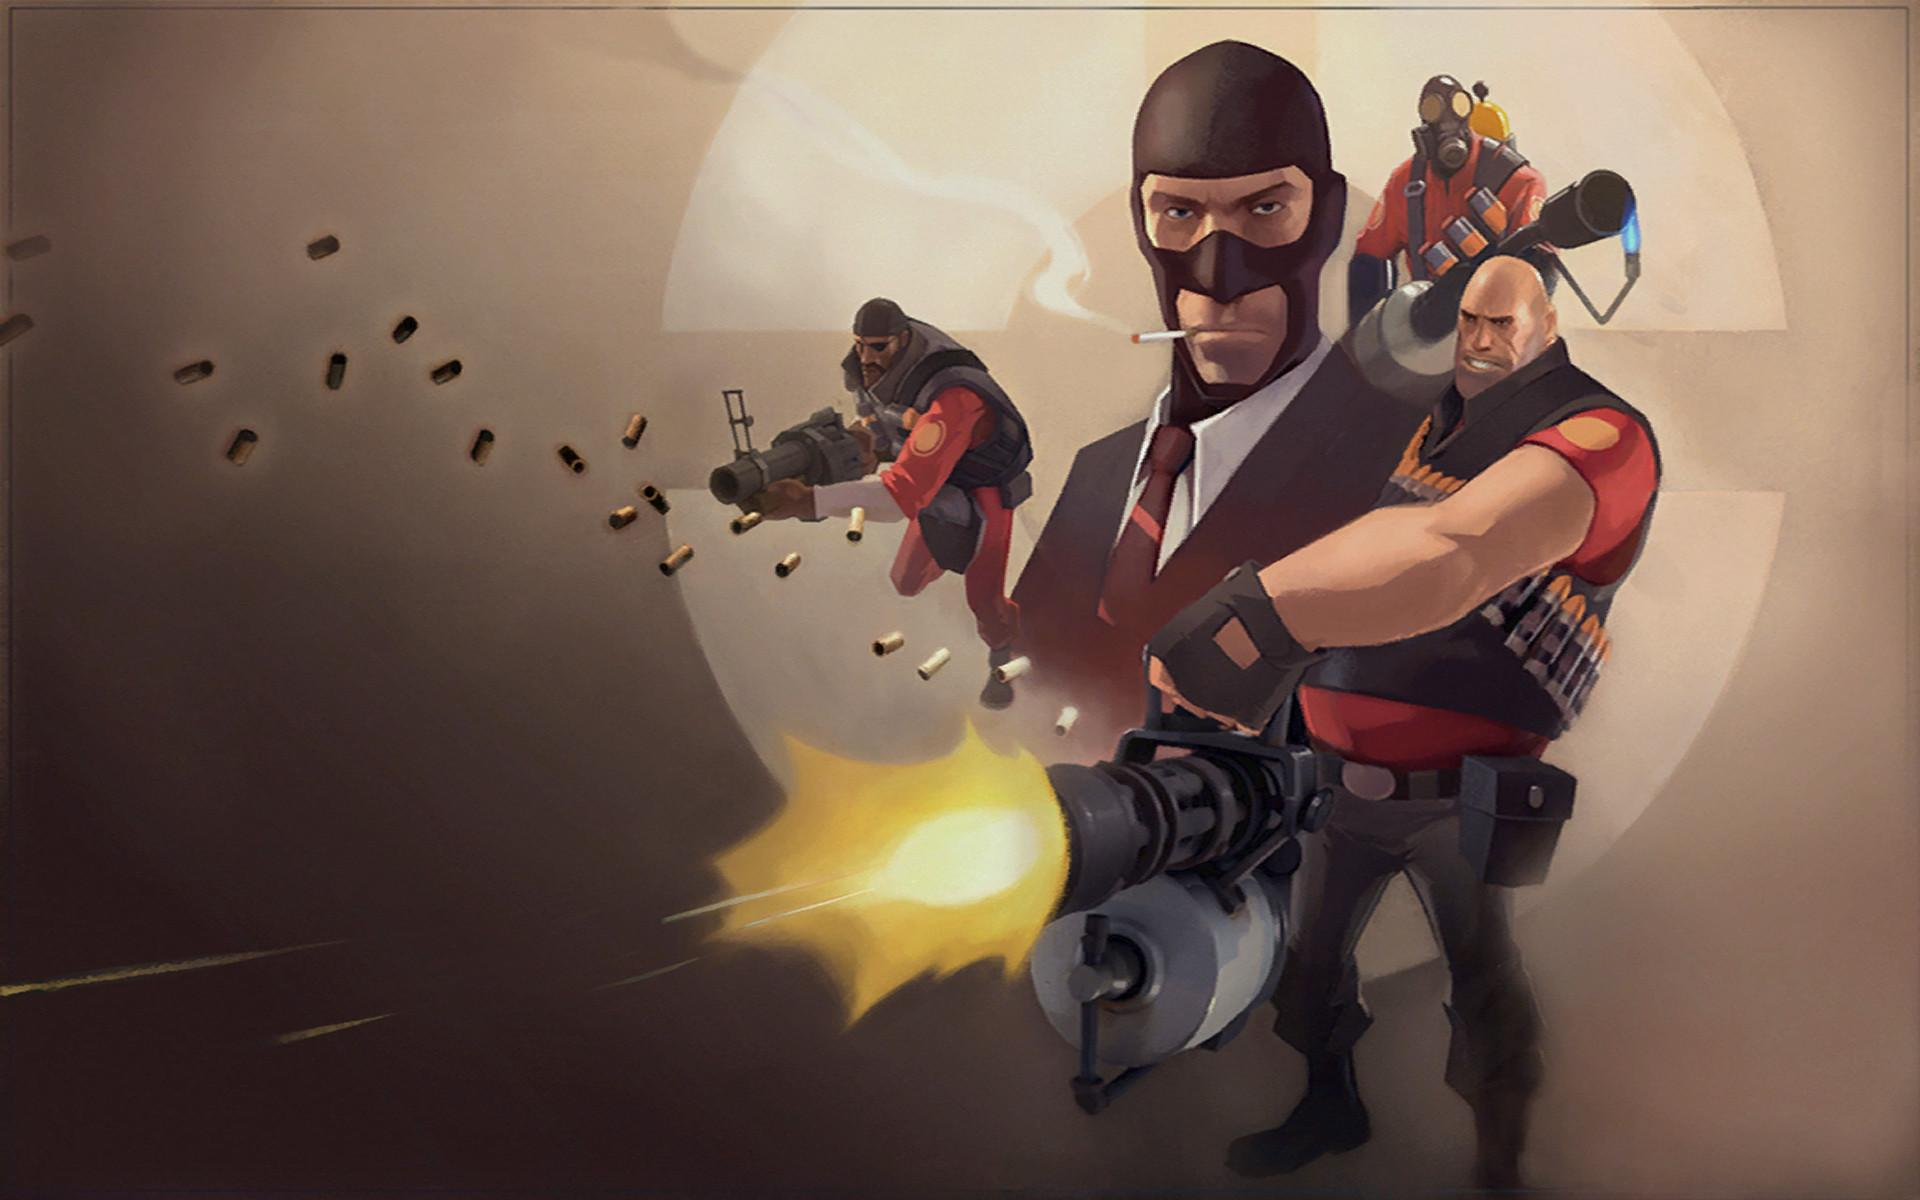 How to Make a World of Warcraft Vista Faster WithTF2 wallpaper